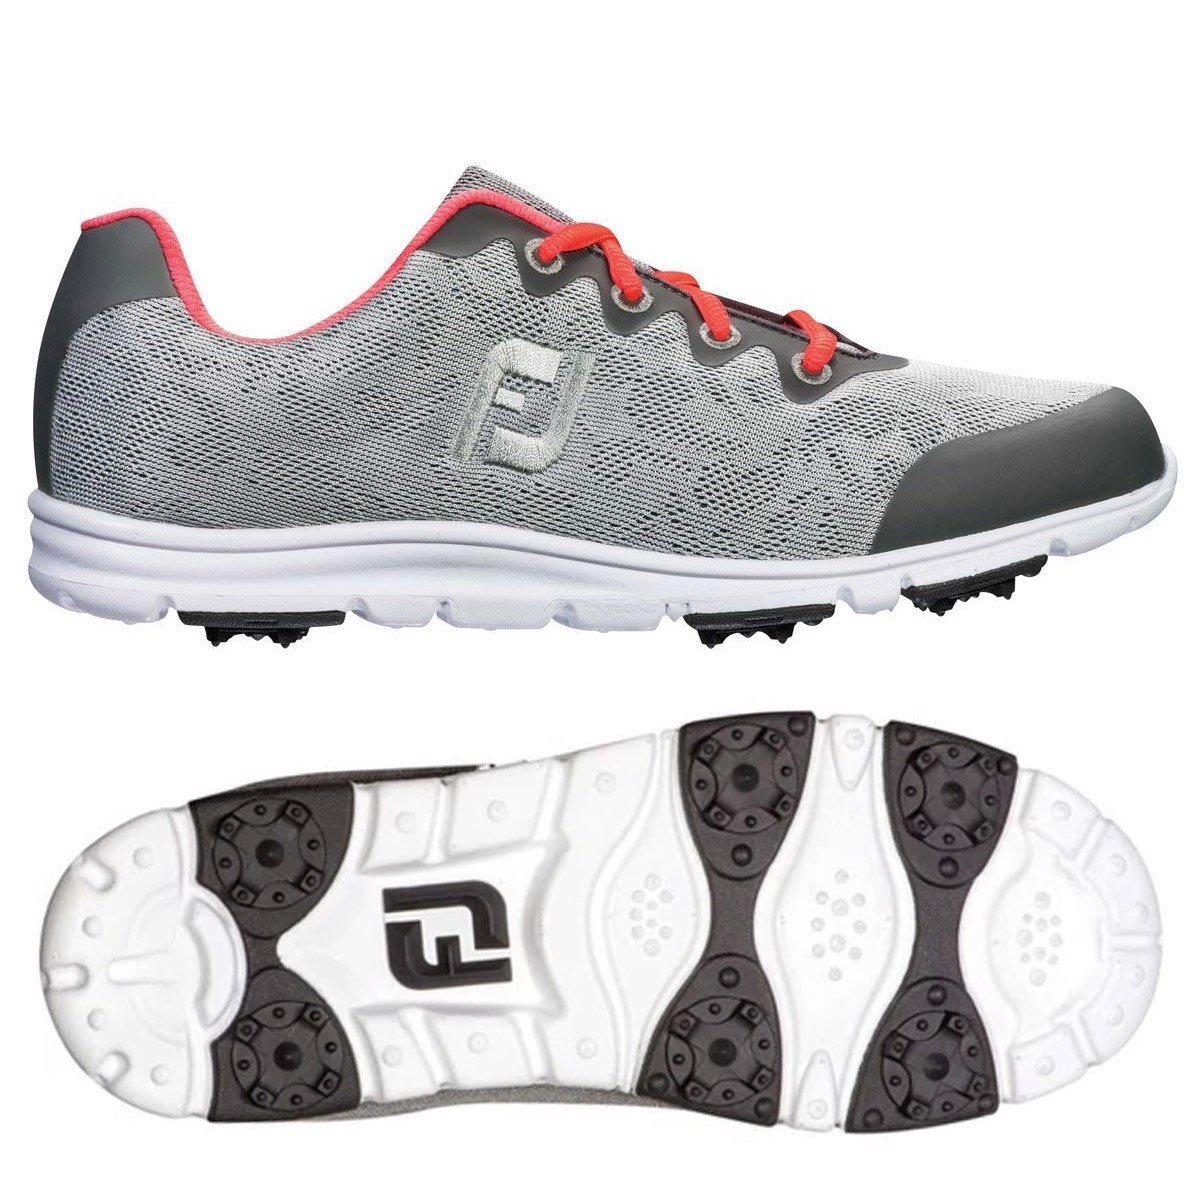 Giày golf nữ ENJOY CHARCOAL/GRAPE 95711 Wide | FootJoy